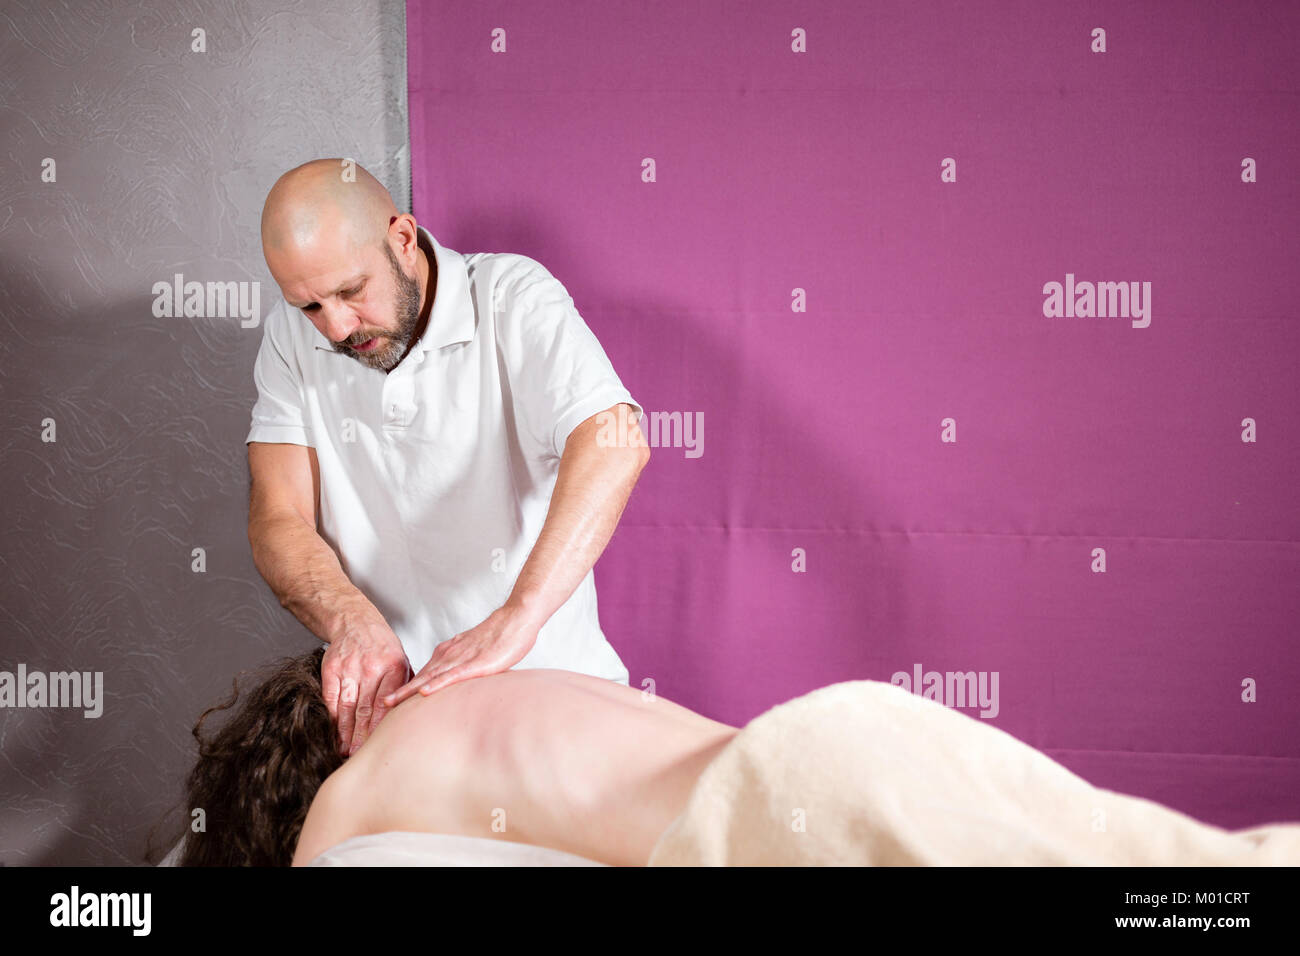 Masseur hands doing spine and back massage, neck and hand. Relaxed patient enjoys. Man hands massaging female. Spa - Stock Image